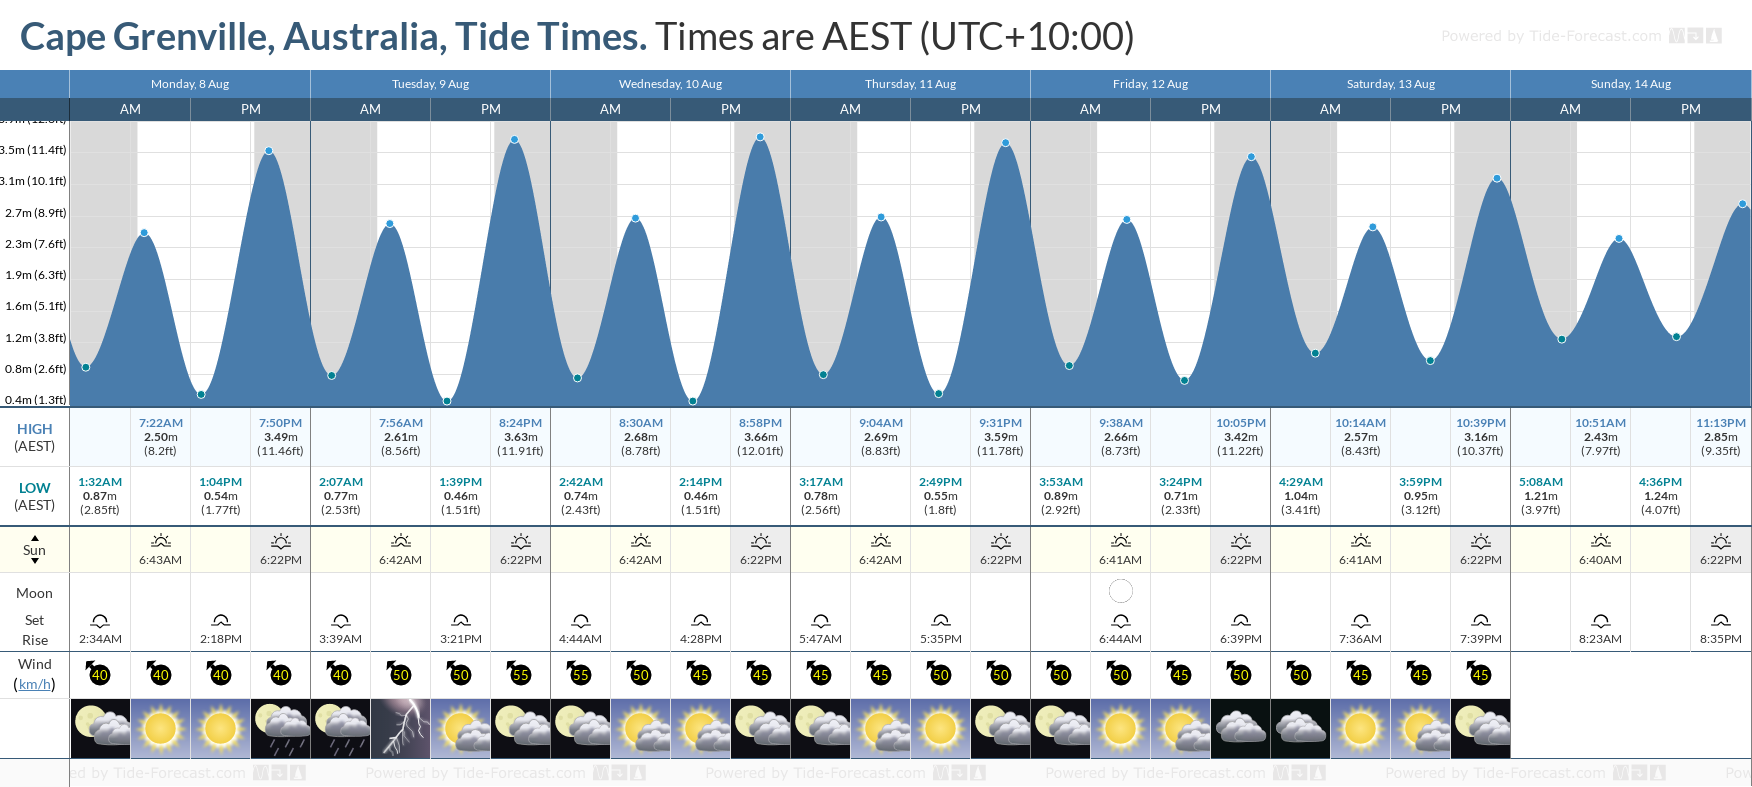 Cape Grenville, Australia Tide Chart including high and low tide tide times for the next 7 days